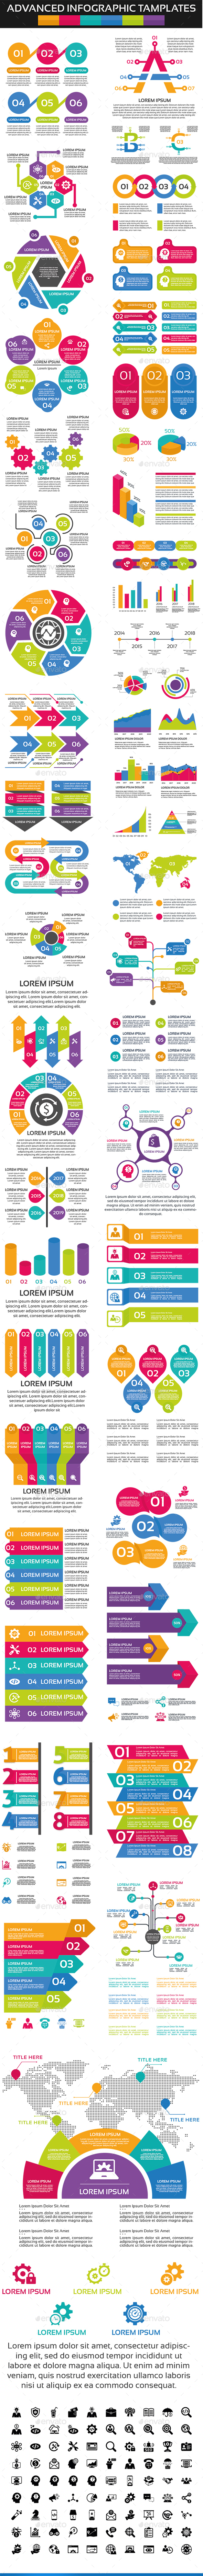 Advanced Infographic Elements - Infographics